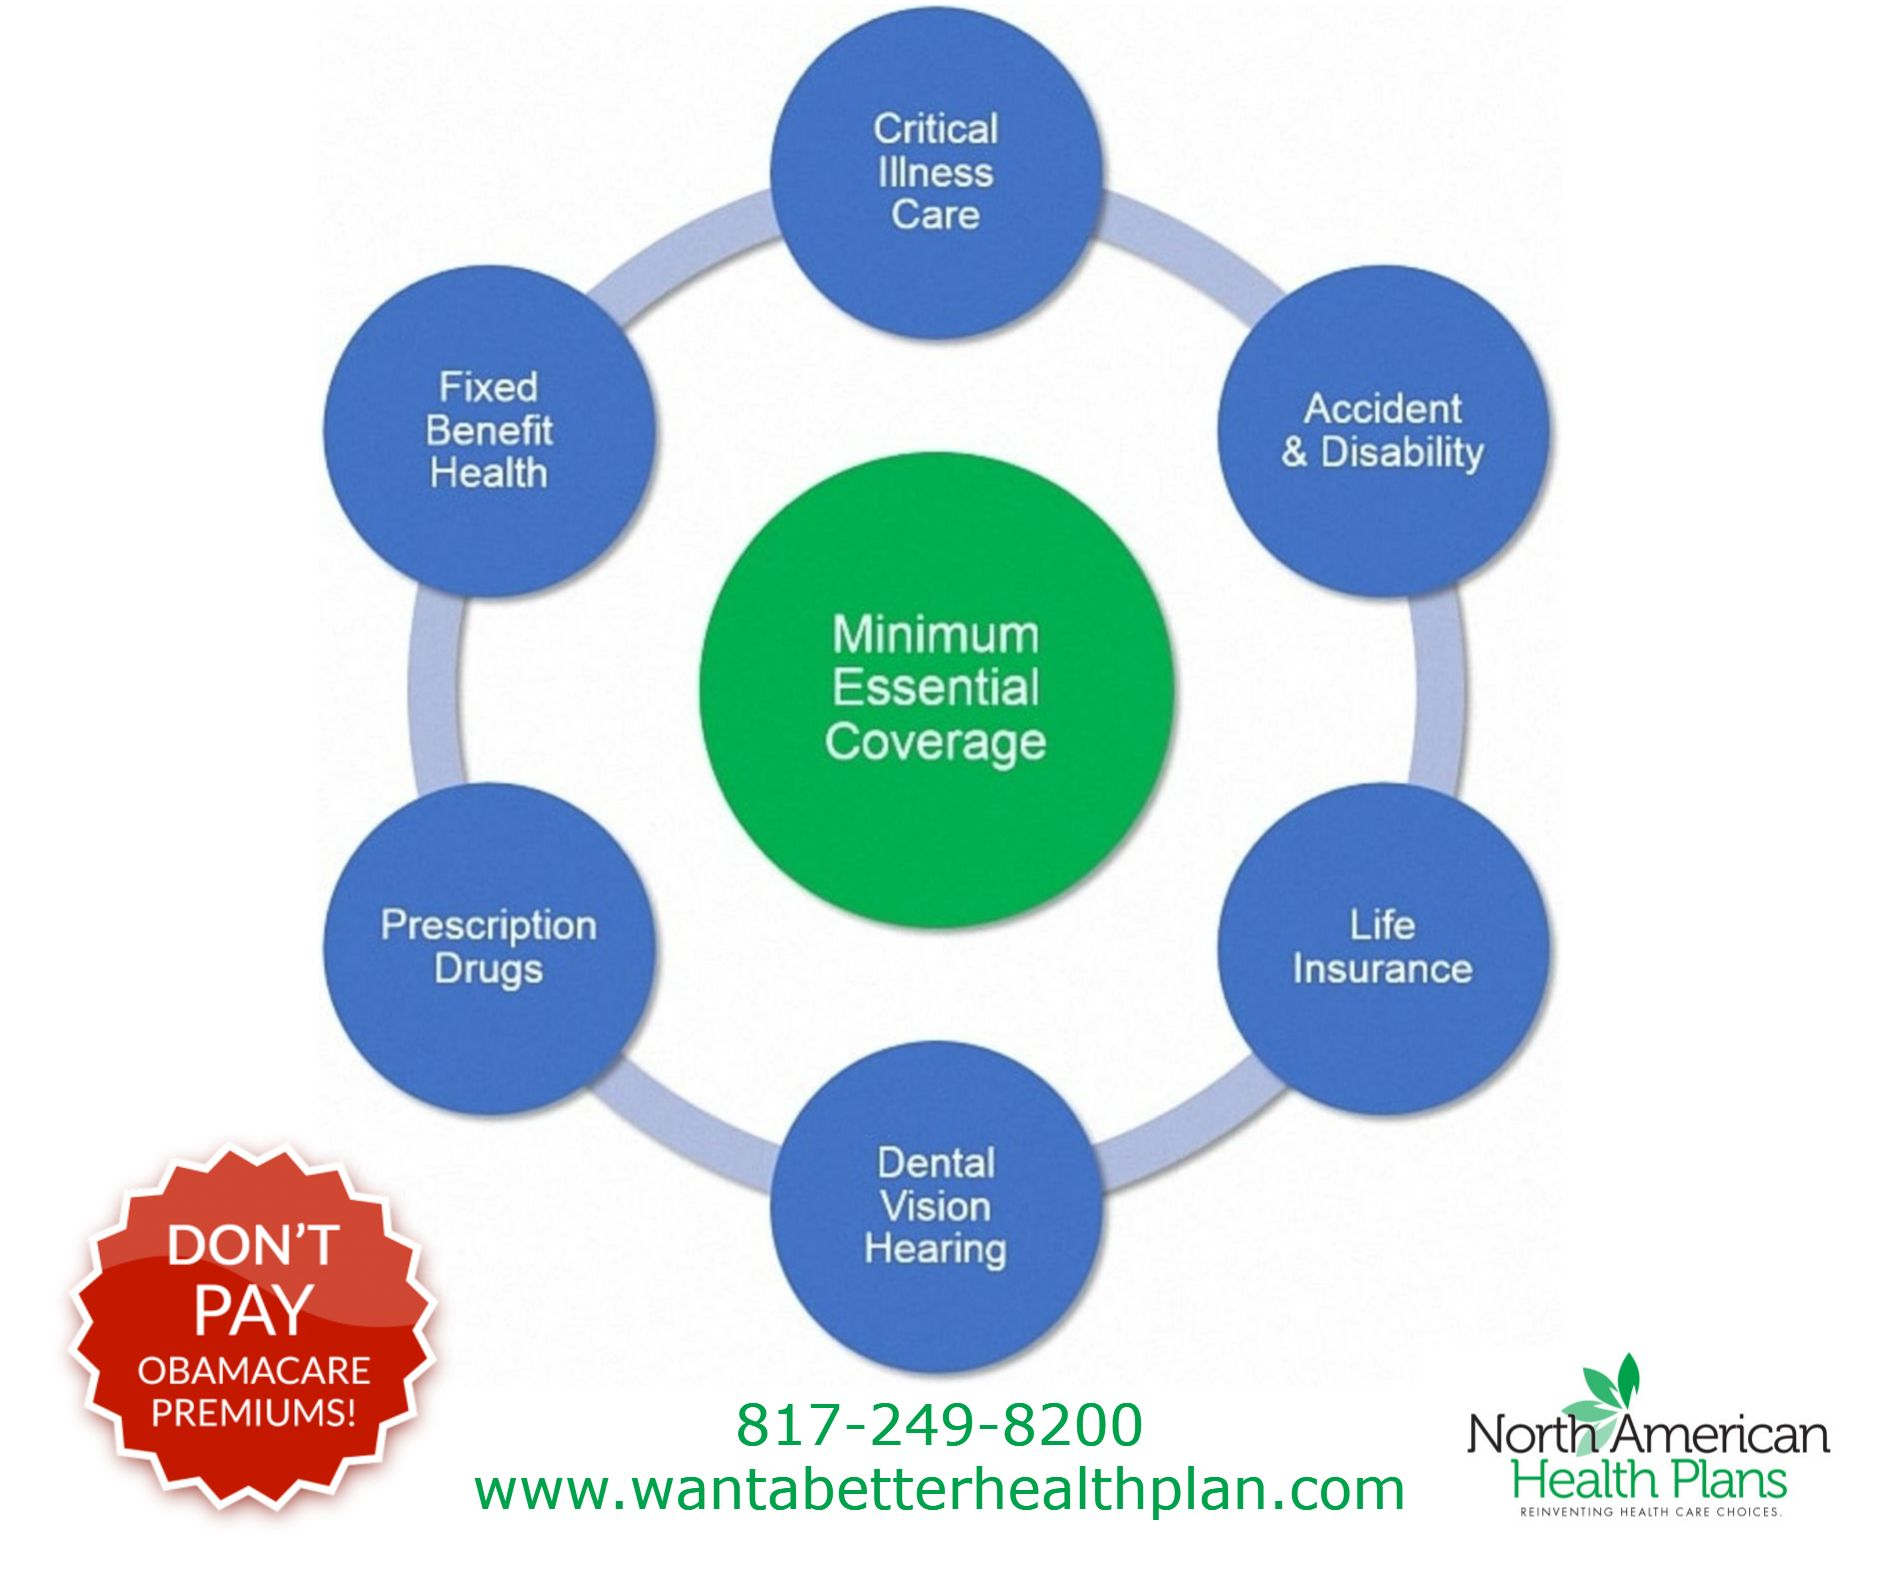 Does Your Health Insurance Plan Cover You In All Of These Areas